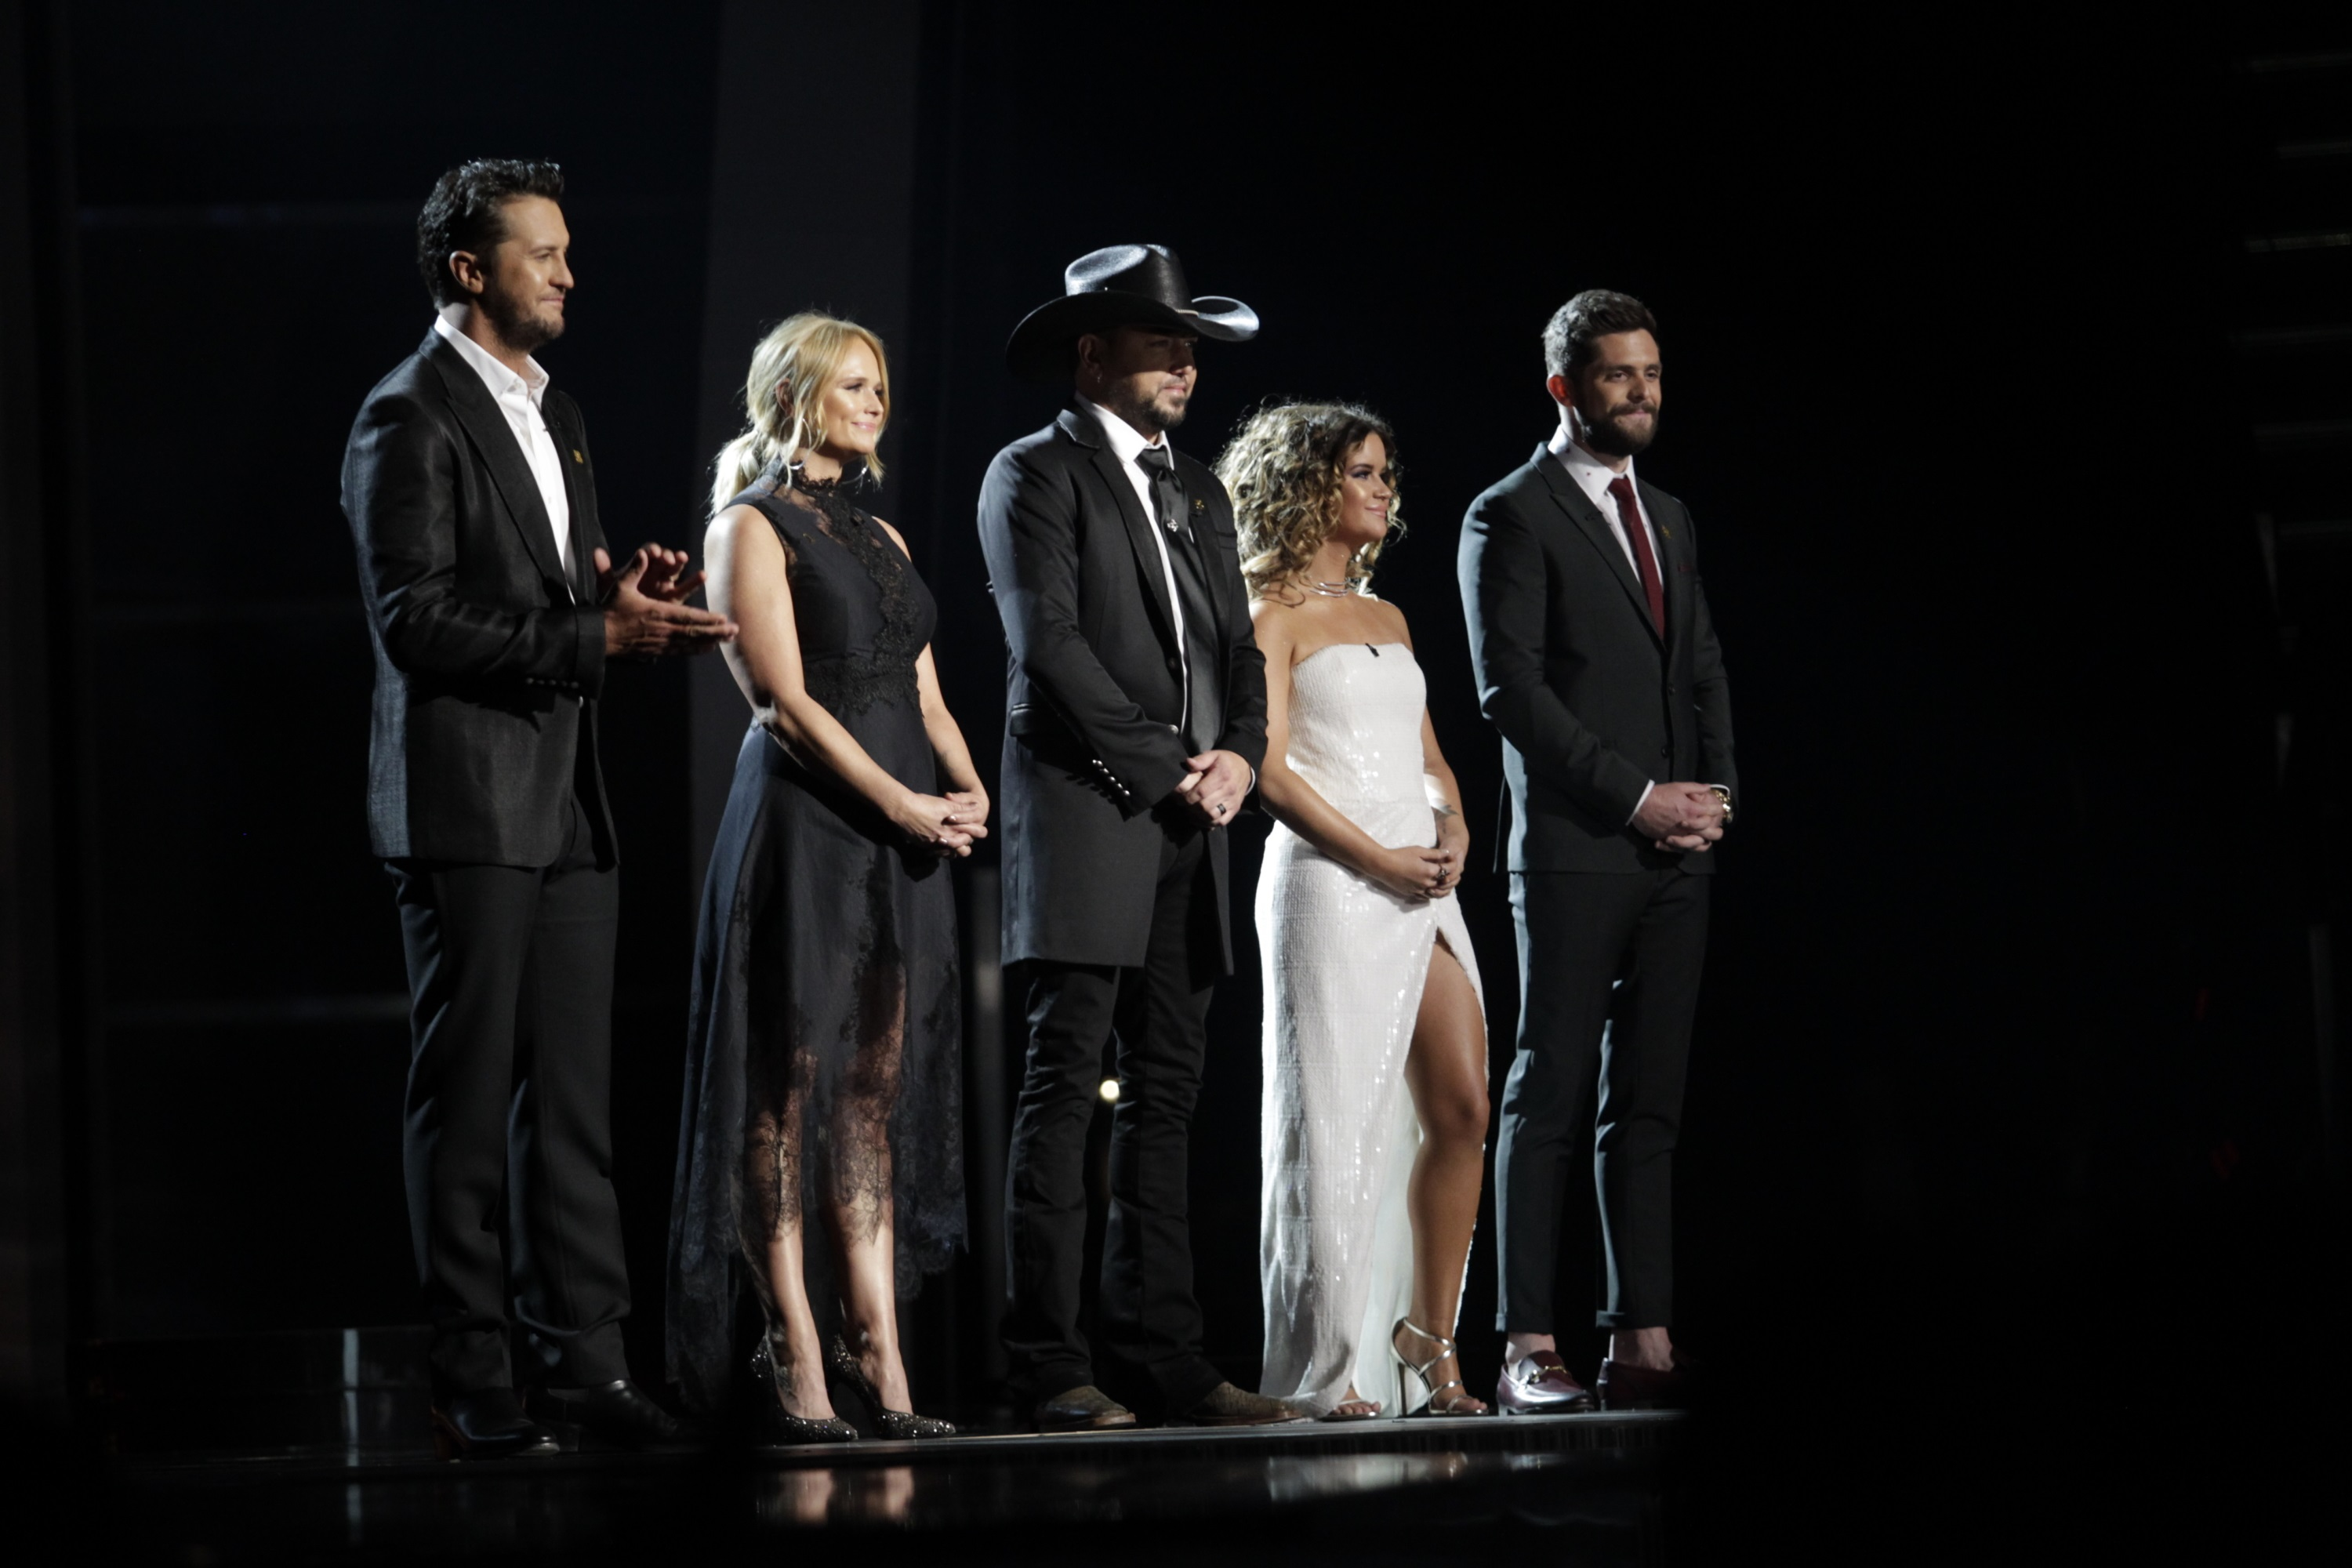 Jason Aldean, Luke Bryan, & More Open 53rd ACM Awards with Route 91 Tribute